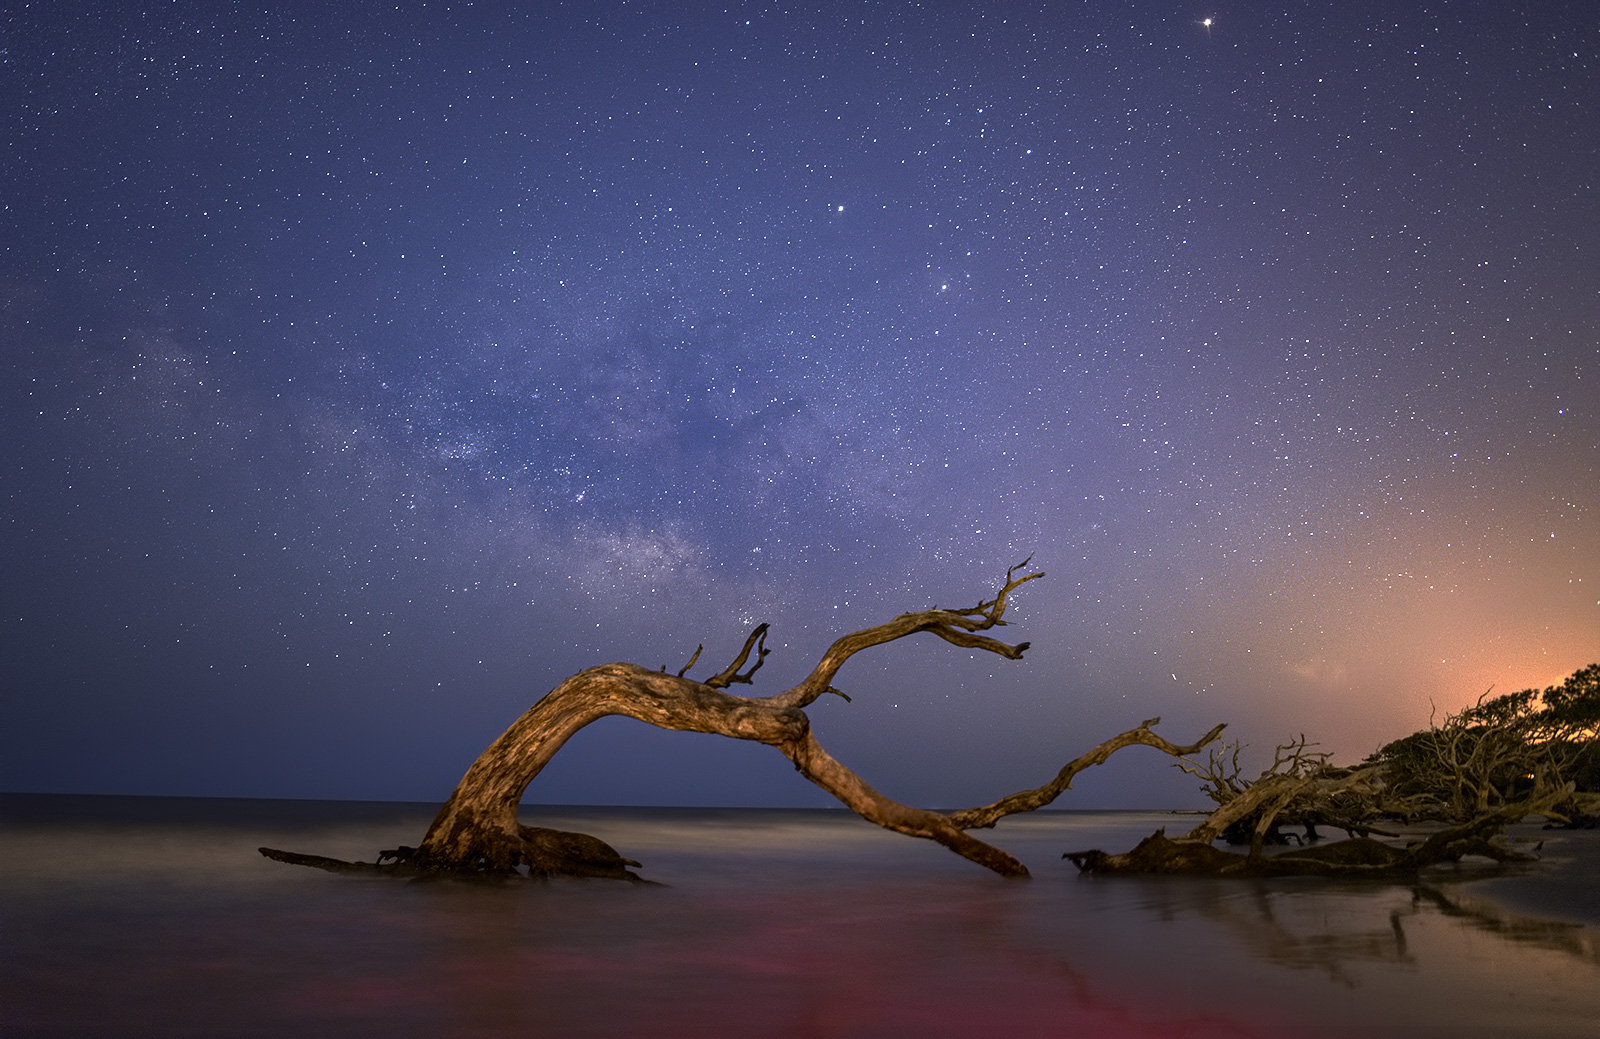 Taken at Driftwood Beach, towards the north section of Jekyll Island, Georgia. Taken towards the end of blue hour, with the Milky Way just about showing up.